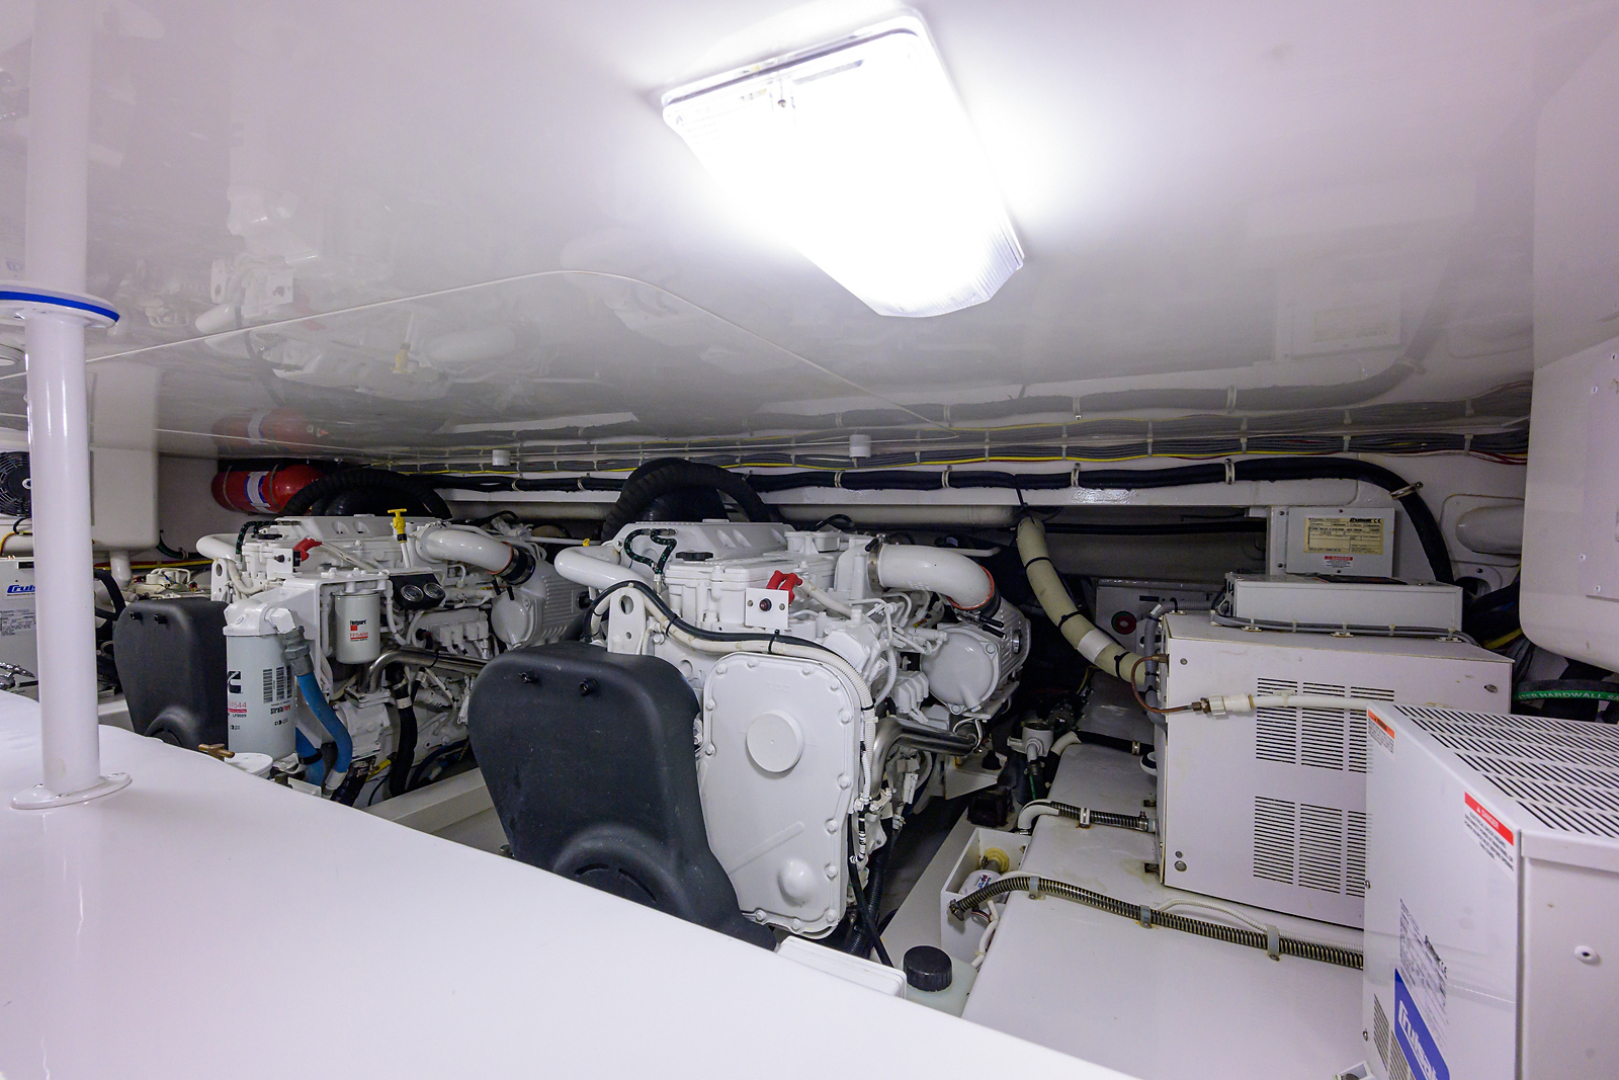 Viking-Convertible 2015-No Anchors Cape Canaveral-Florida-United States-Engine Room-1472489 | Thumbnail